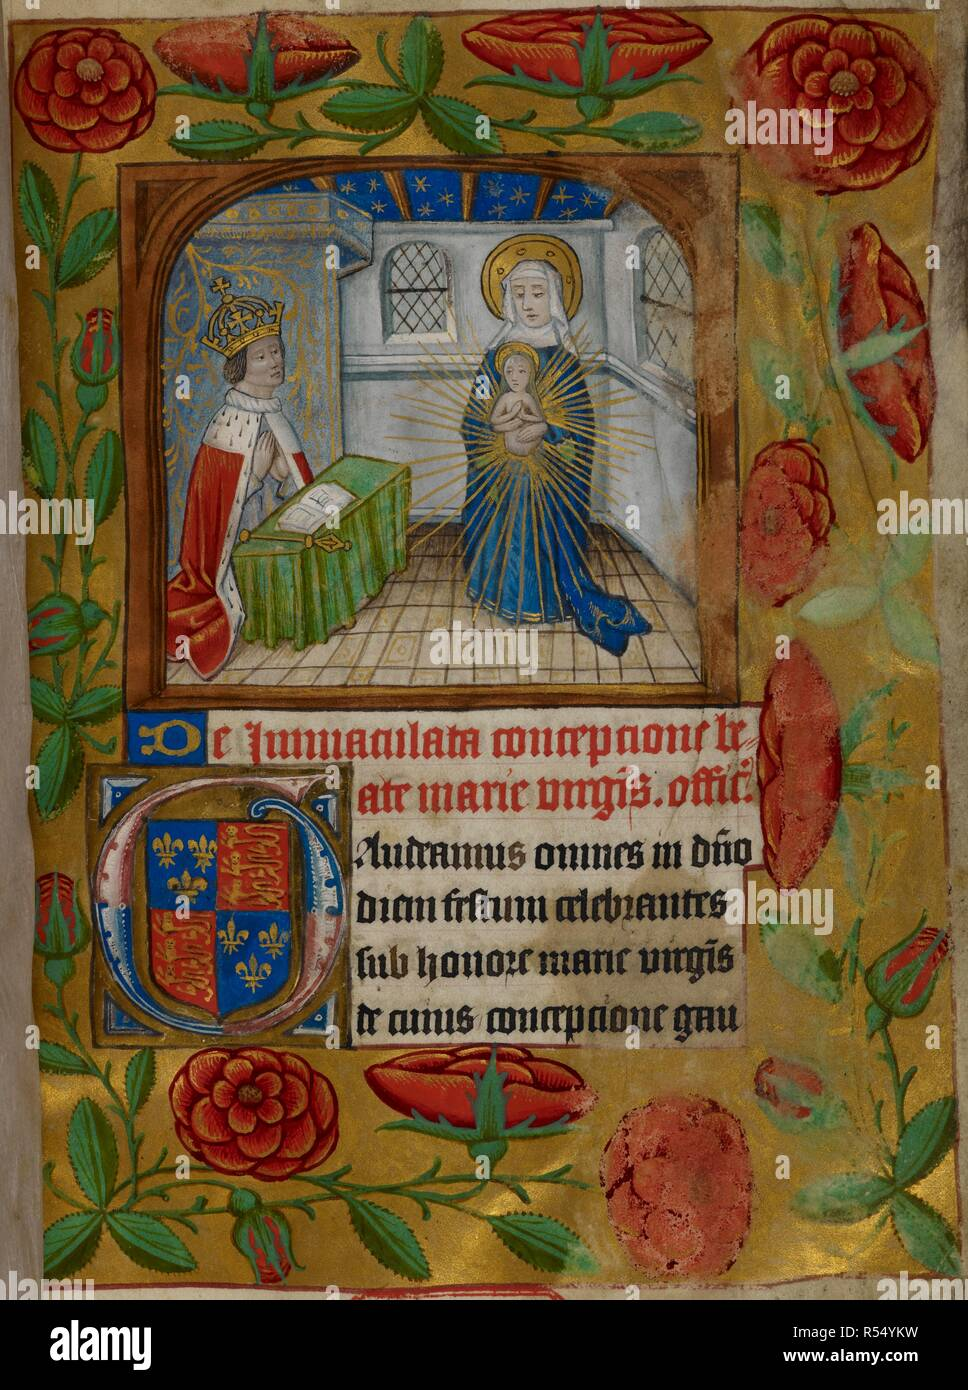 Henry VII crowned, kneeling at a desk, on which his sceptre is laid.The king is in Adoration of the Immaculate Conception of the Virgin. Border of red roses on gold ground, and illuminated initials. Office of the Mass for the Immaculate Conception of the Virgin Mary, with prayers, secretum and post. Communion for the king, Henry VII, in Latin. Source: Royal 2 A.XIX, f.1. Language: Latin. - Stock Image